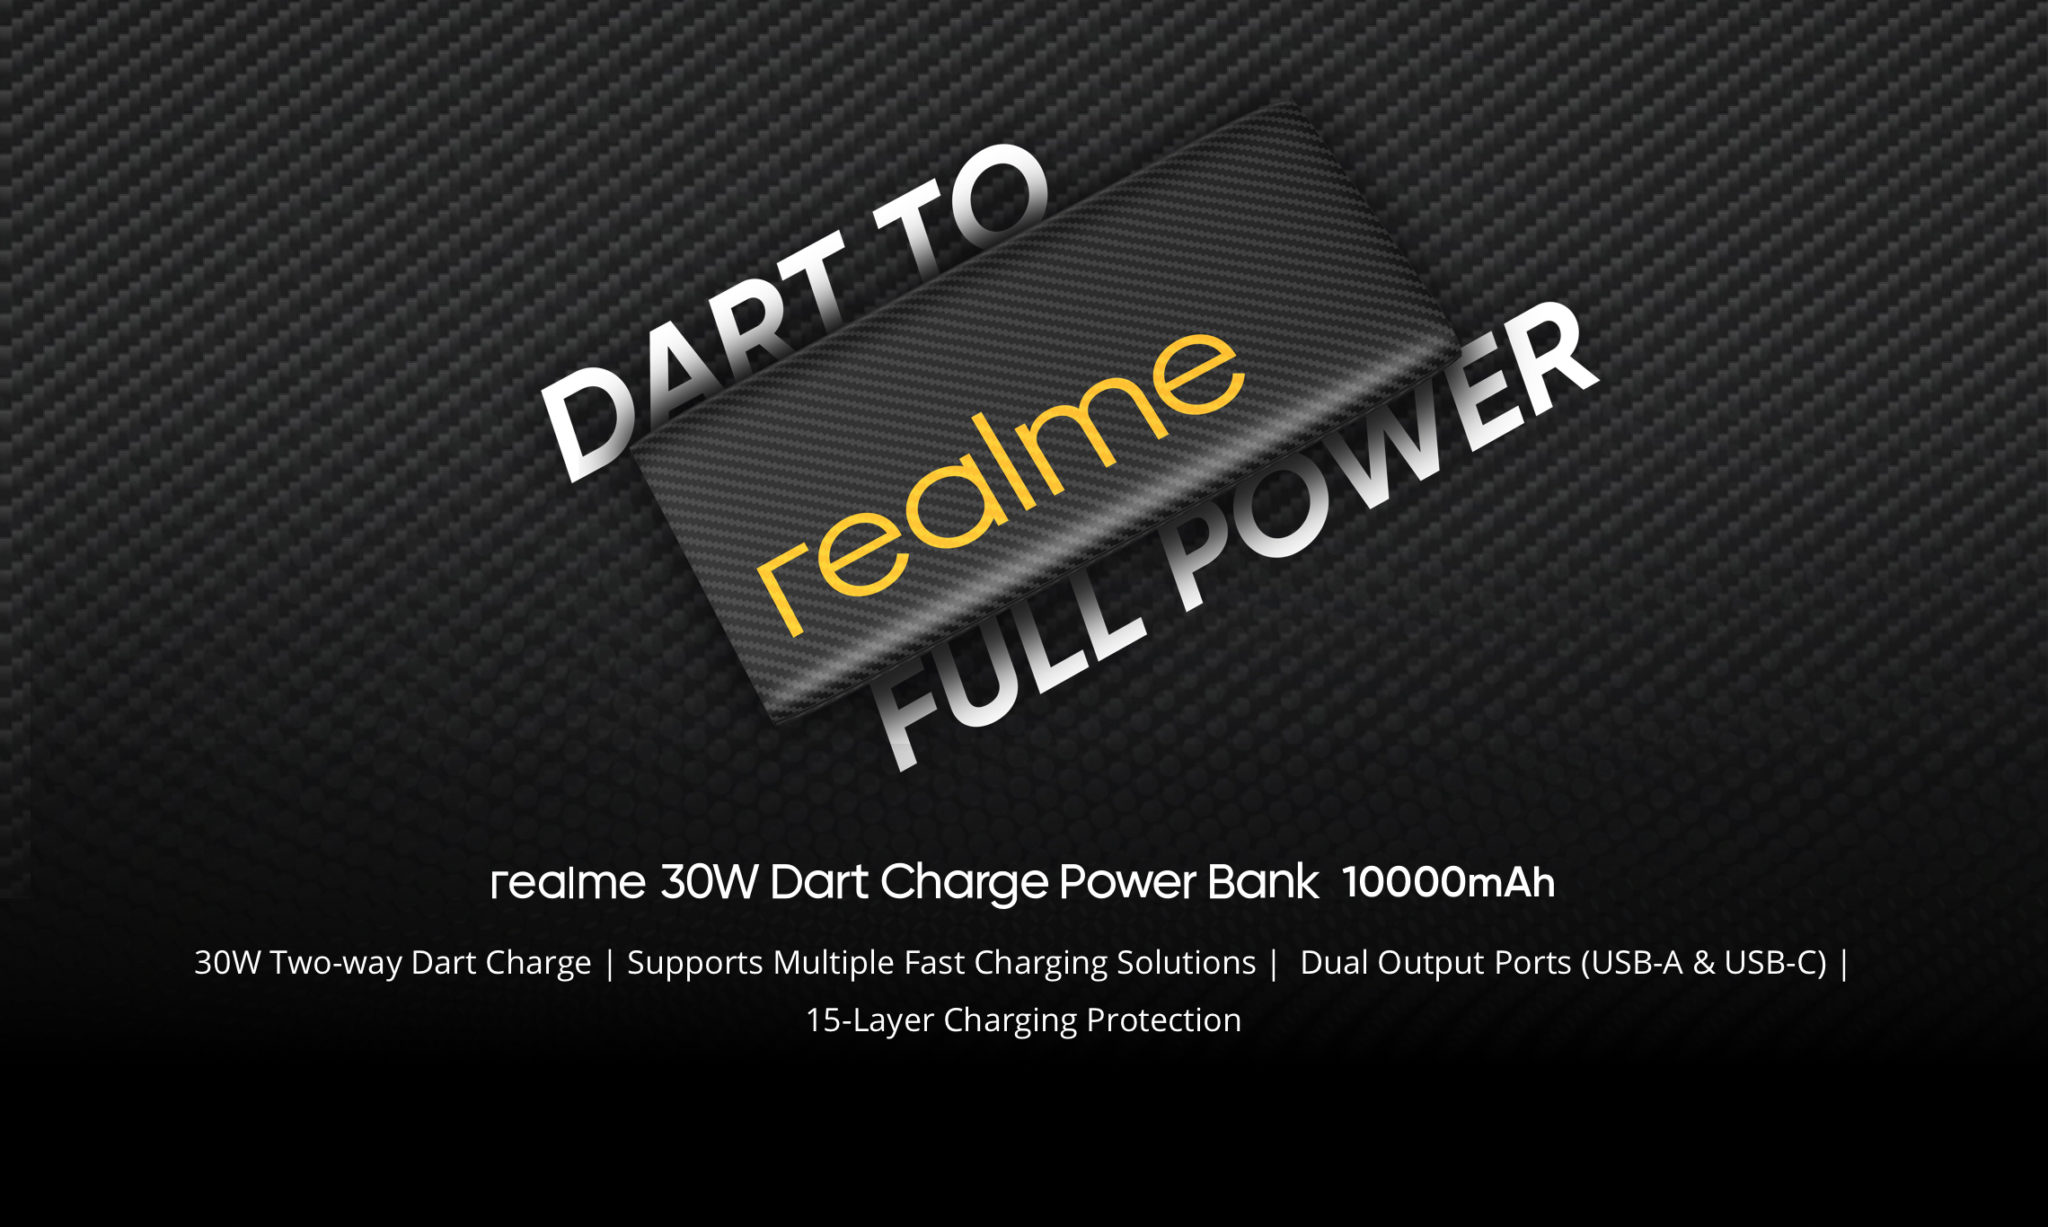 realme 30W Dart Charge 10000mAh Power Bank